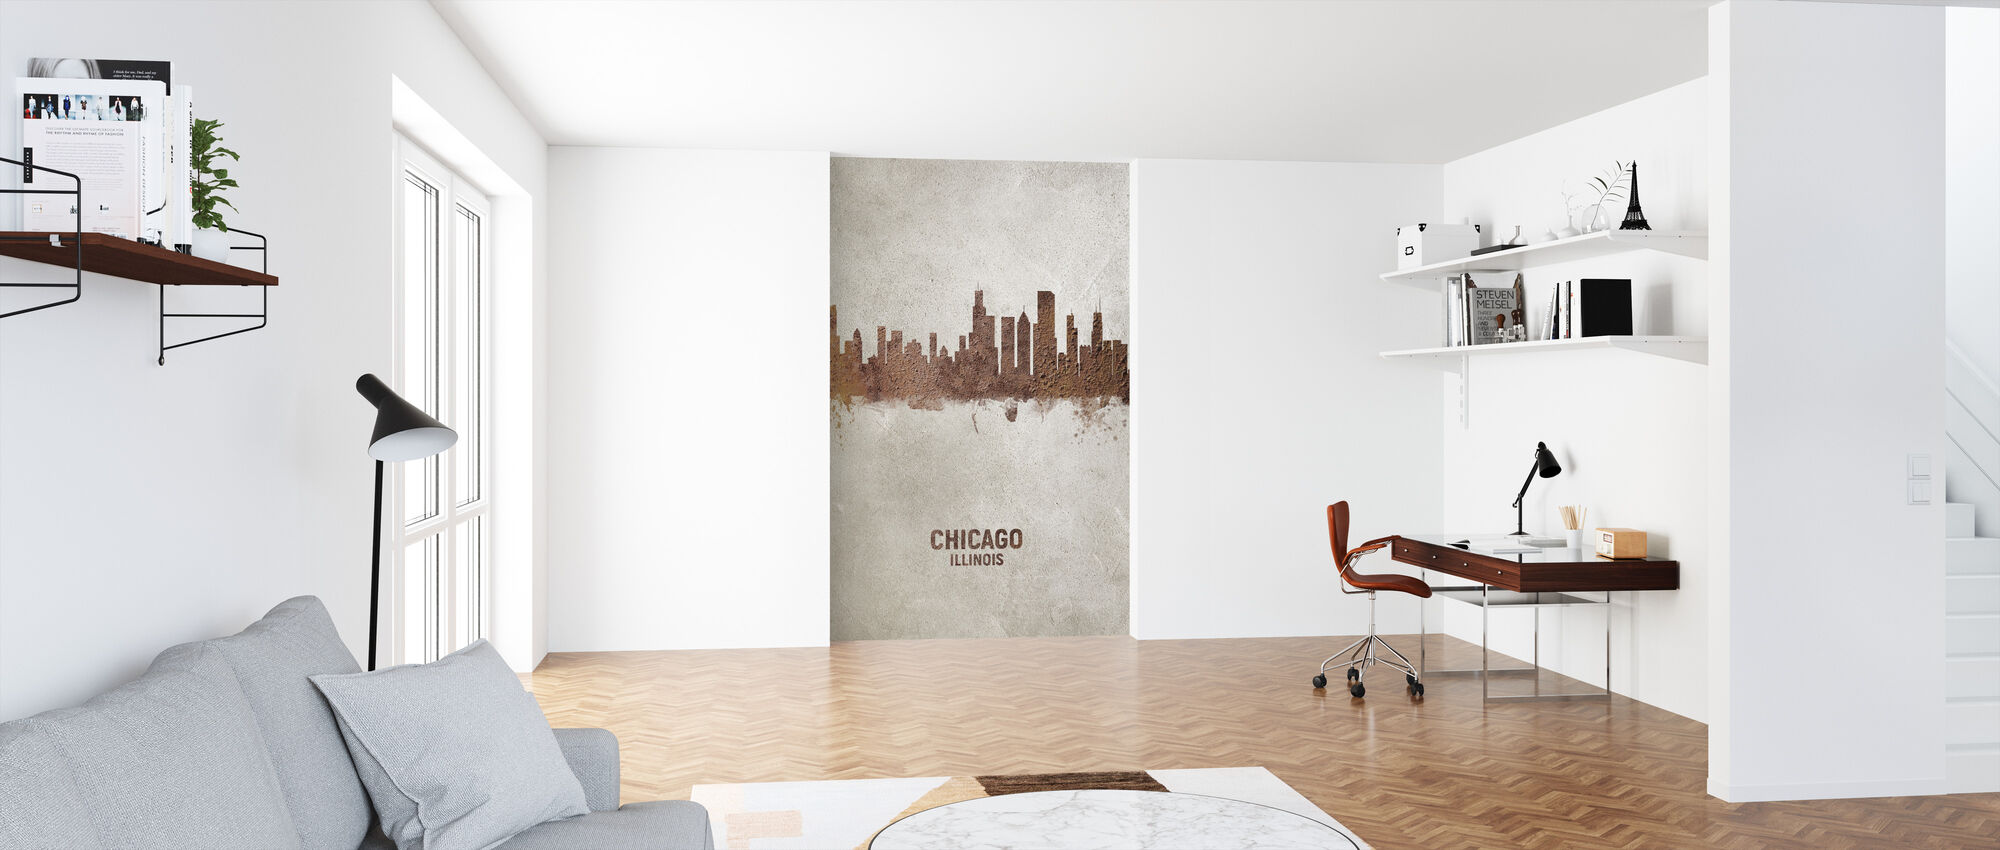 Chicago Illinois Roest Skyline - Behang - Kantoor